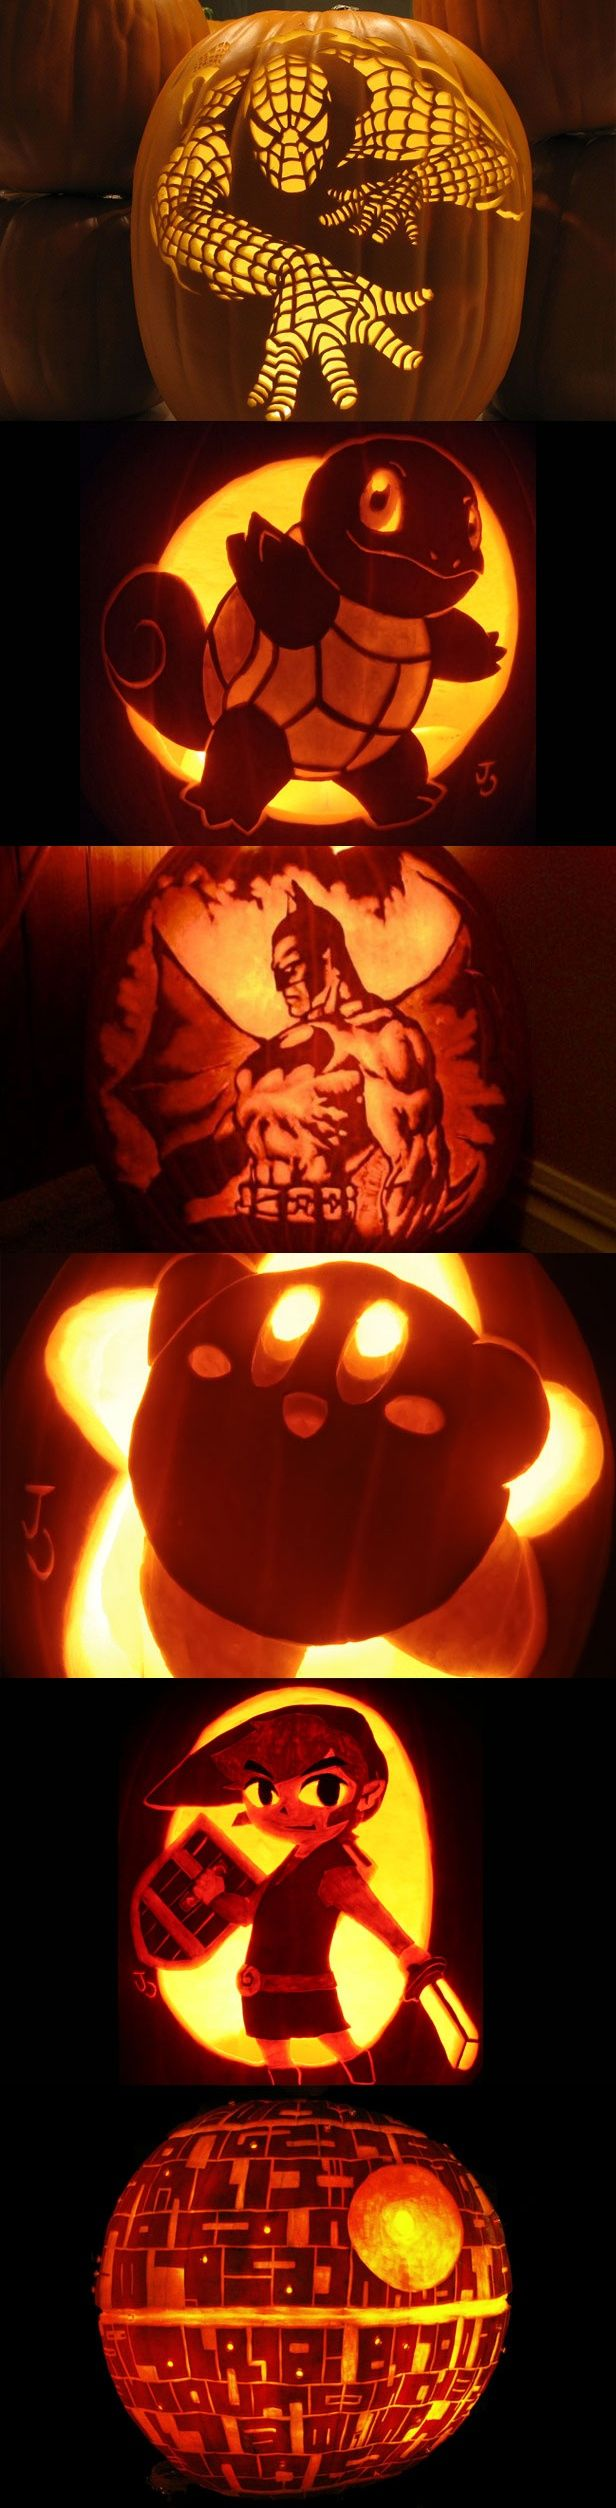 29 best Nerdy Halloween Jack-o-Lanterns & Geeky Pumpkins images on ...